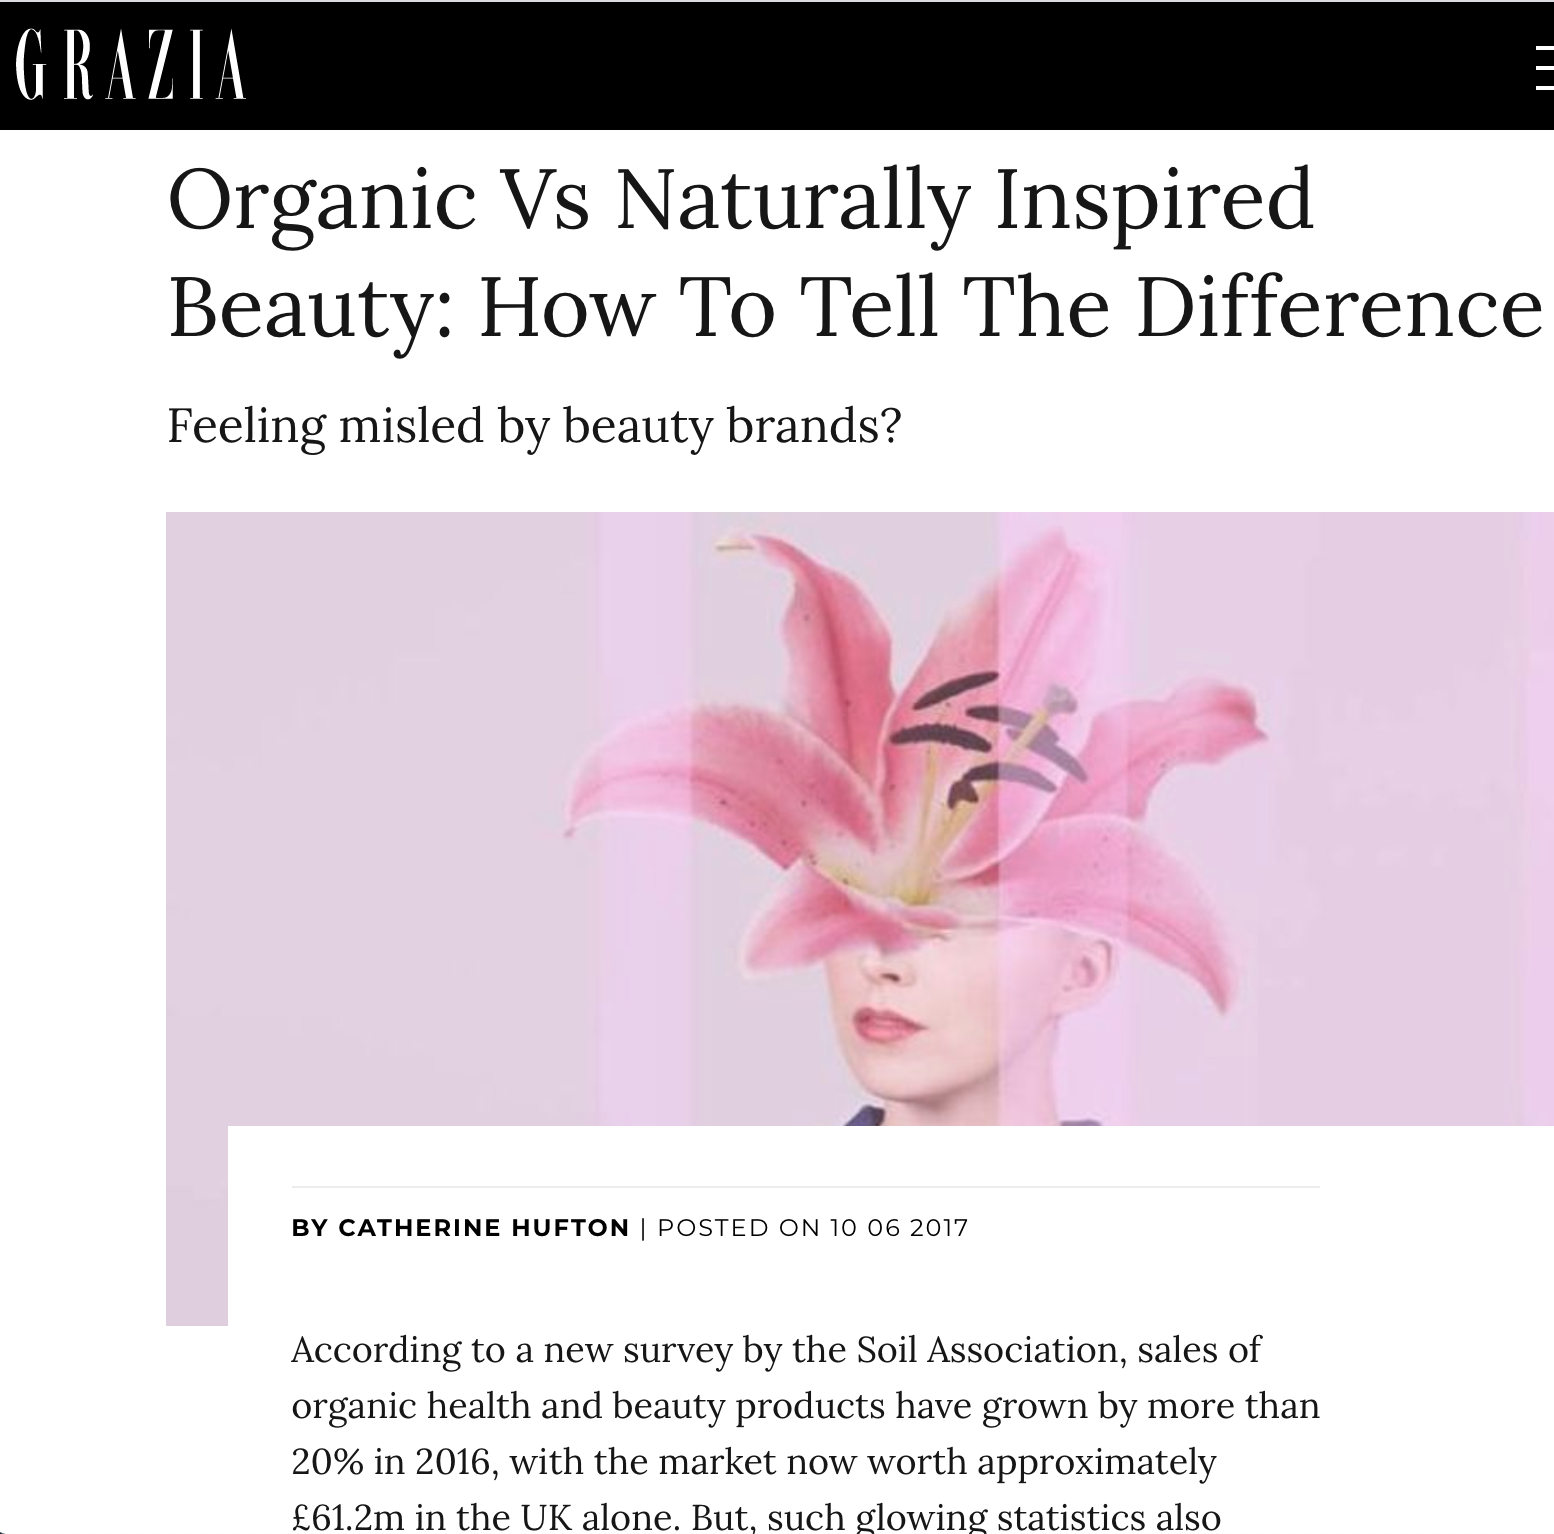 Organic Vs Naturally Inspired Beauty: How To Tell The Difference